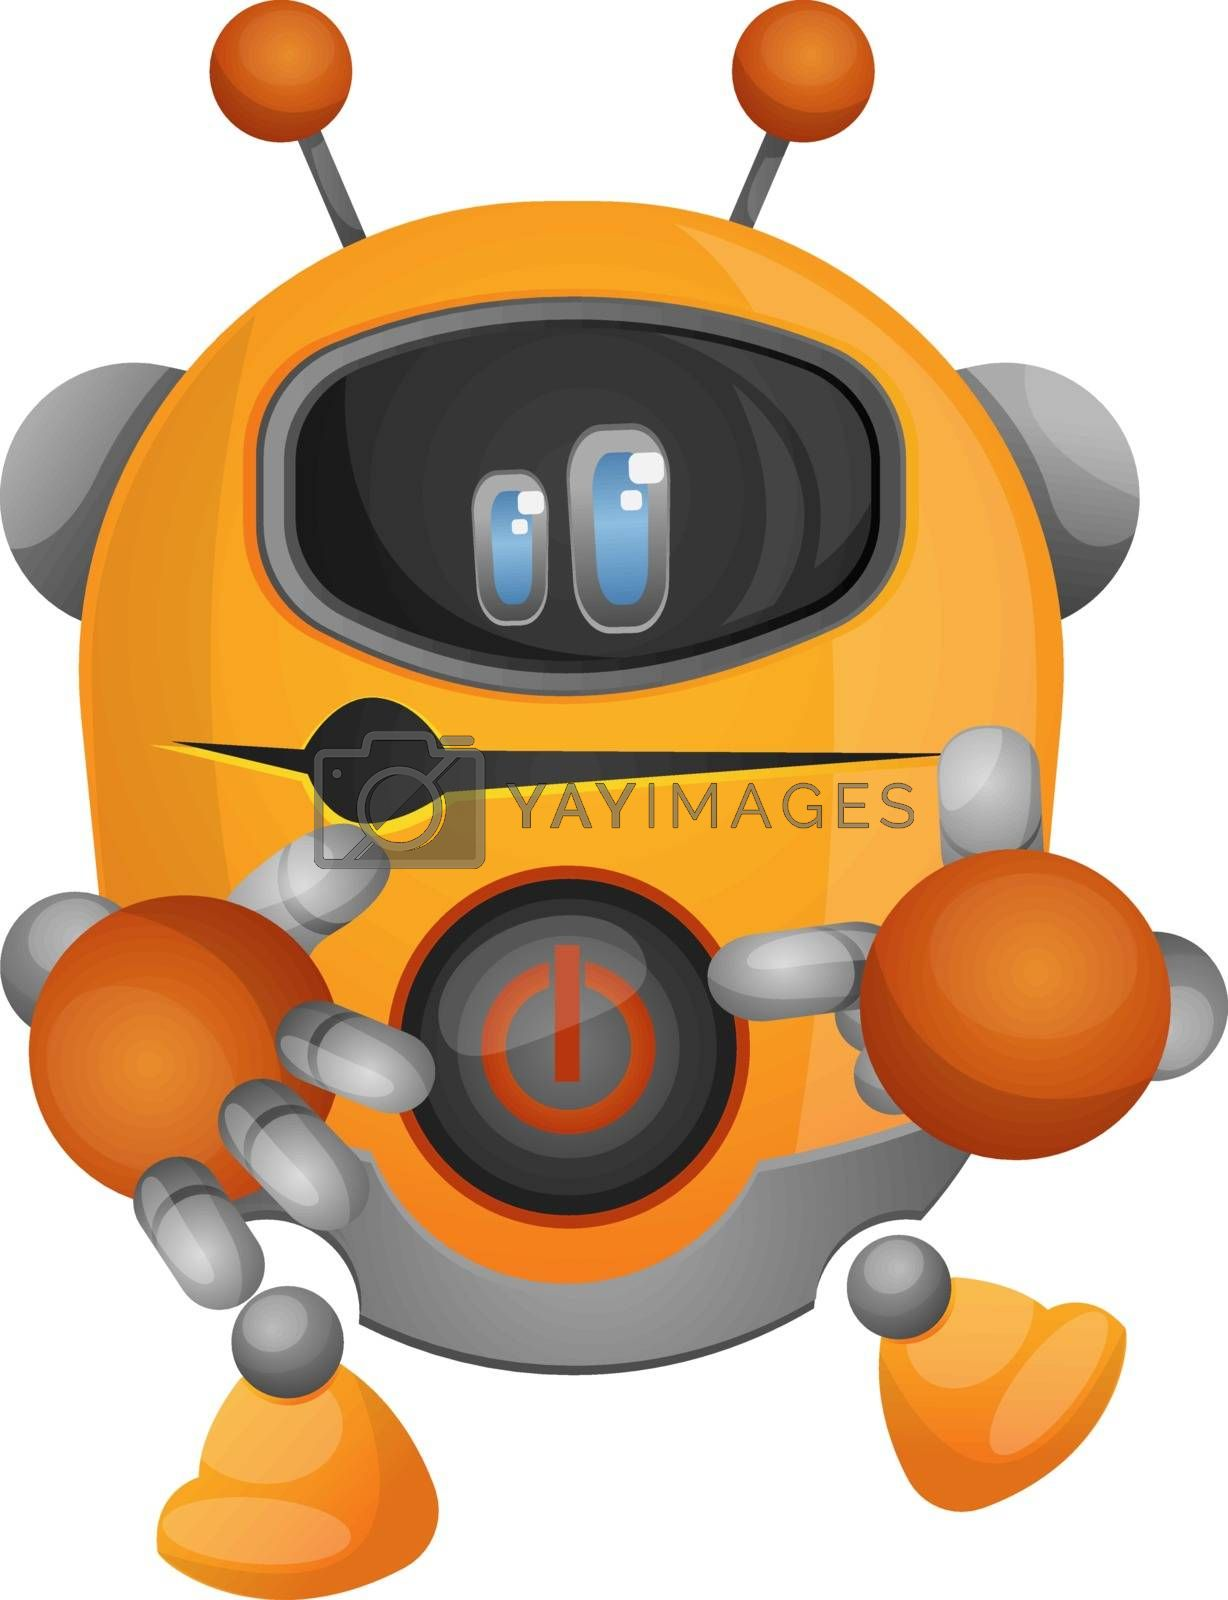 Royalty free image of Yellow robot showing his power button illustration vector on whi by Morphart